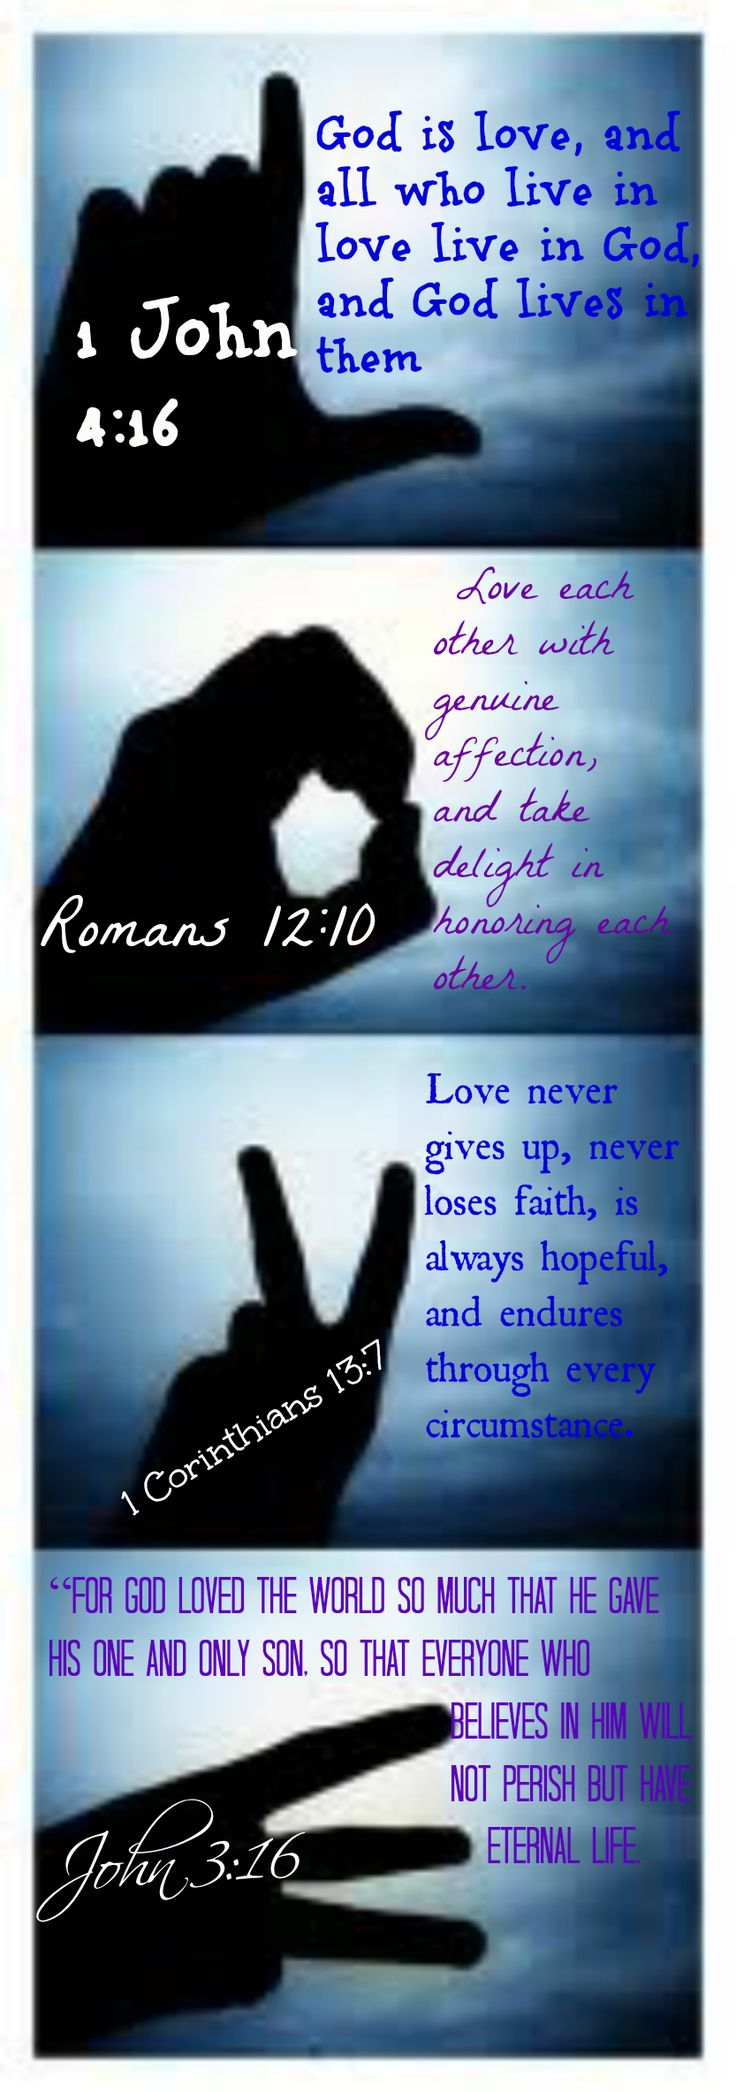 Love ♥ More at http://ibibleverses.christianpost.com/